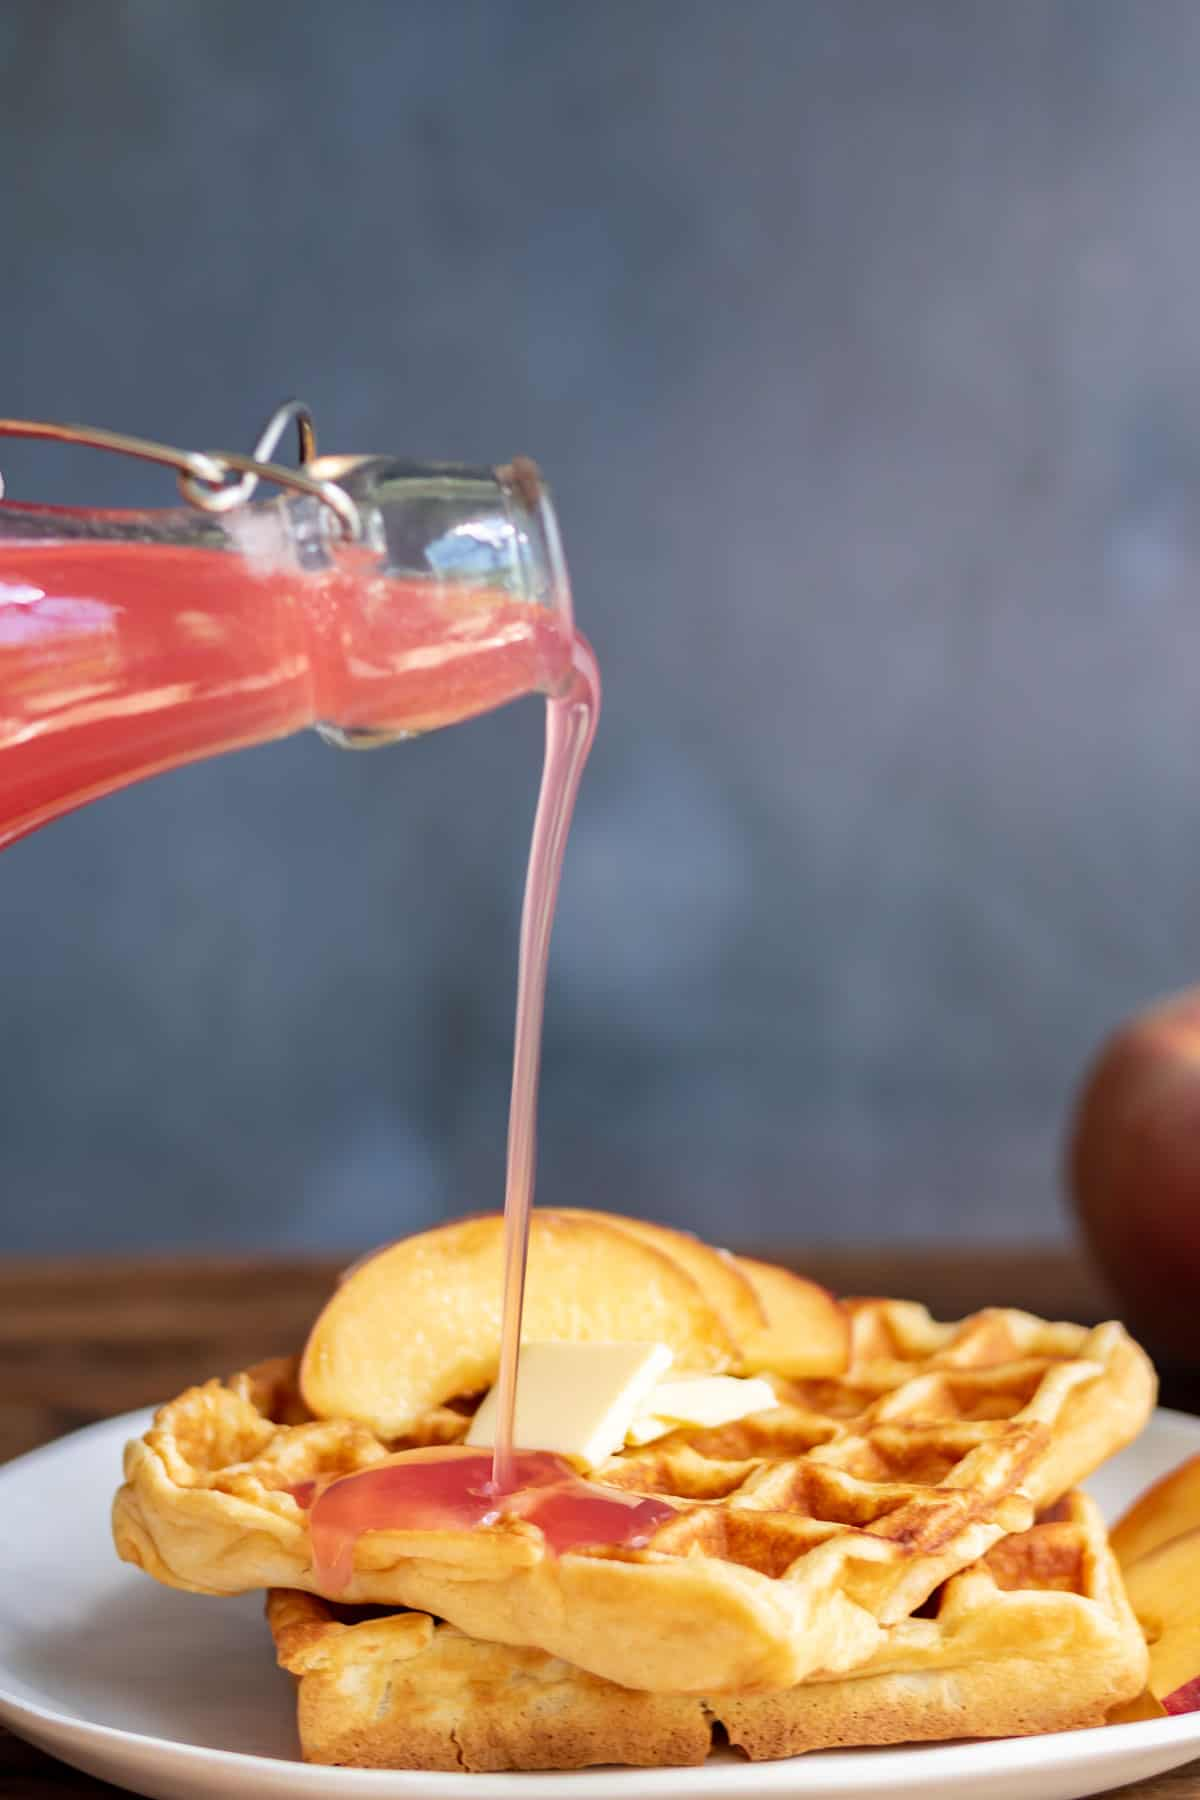 Peach syrup being drizzled onto waffles.